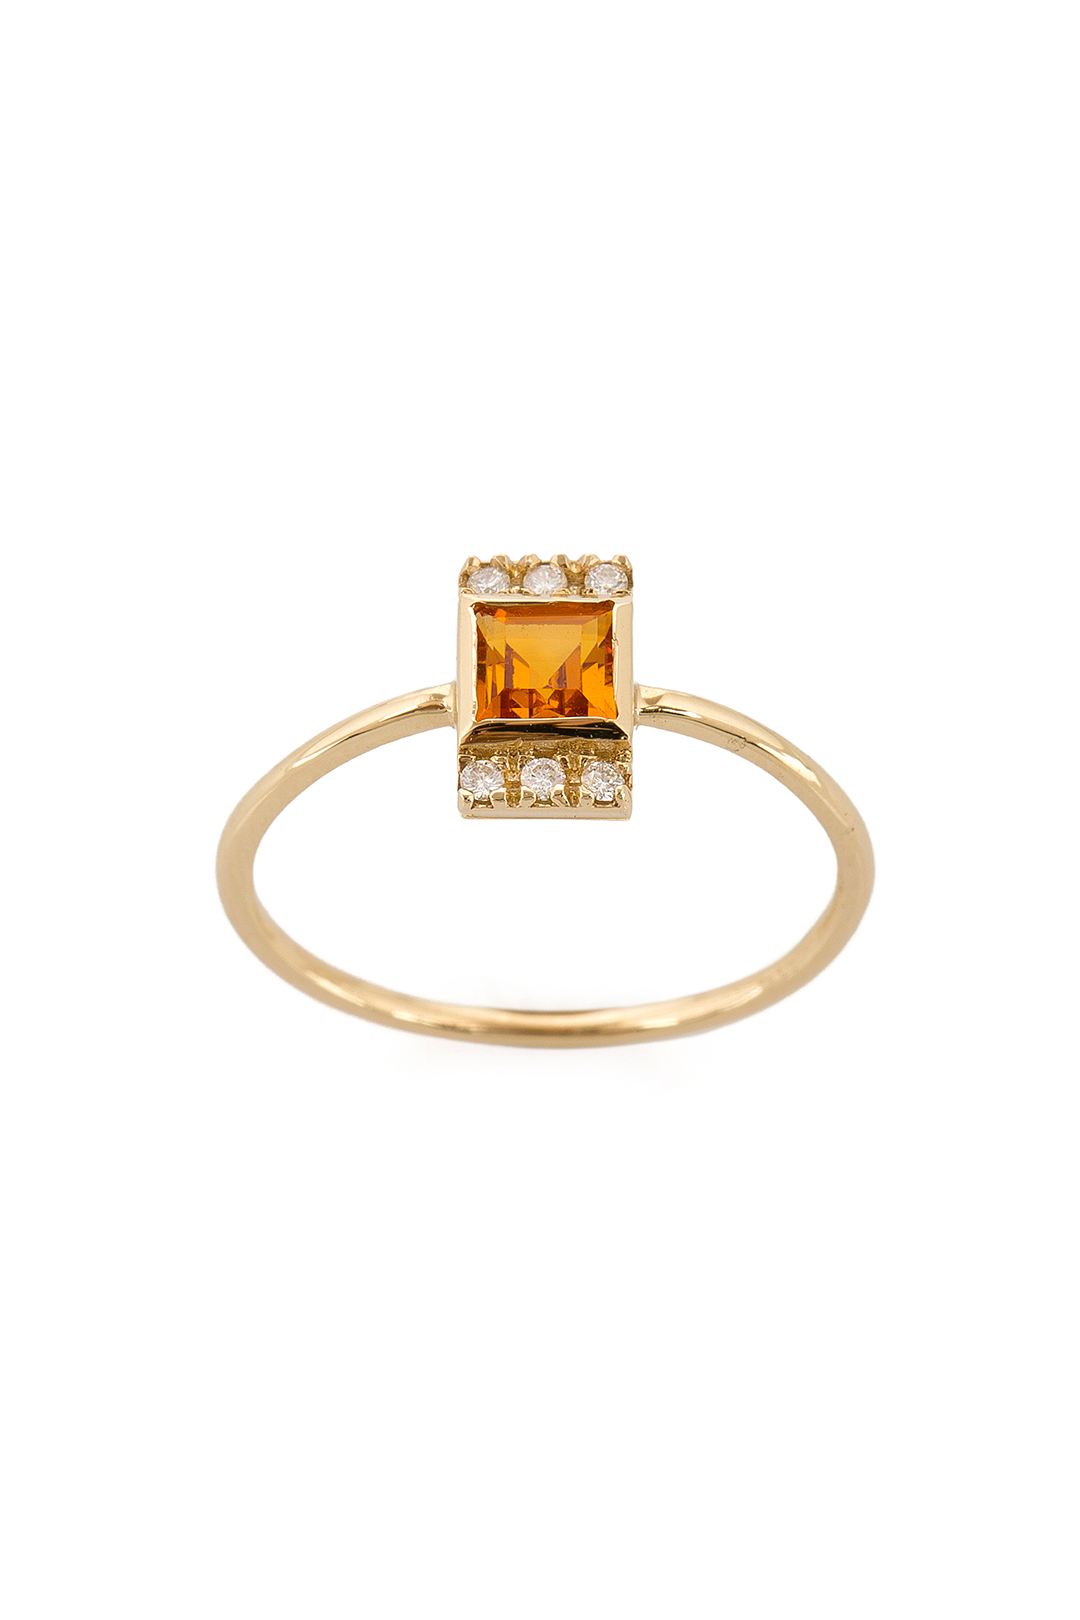 MINI SQUARE CITRIN AND DIAMOND RING